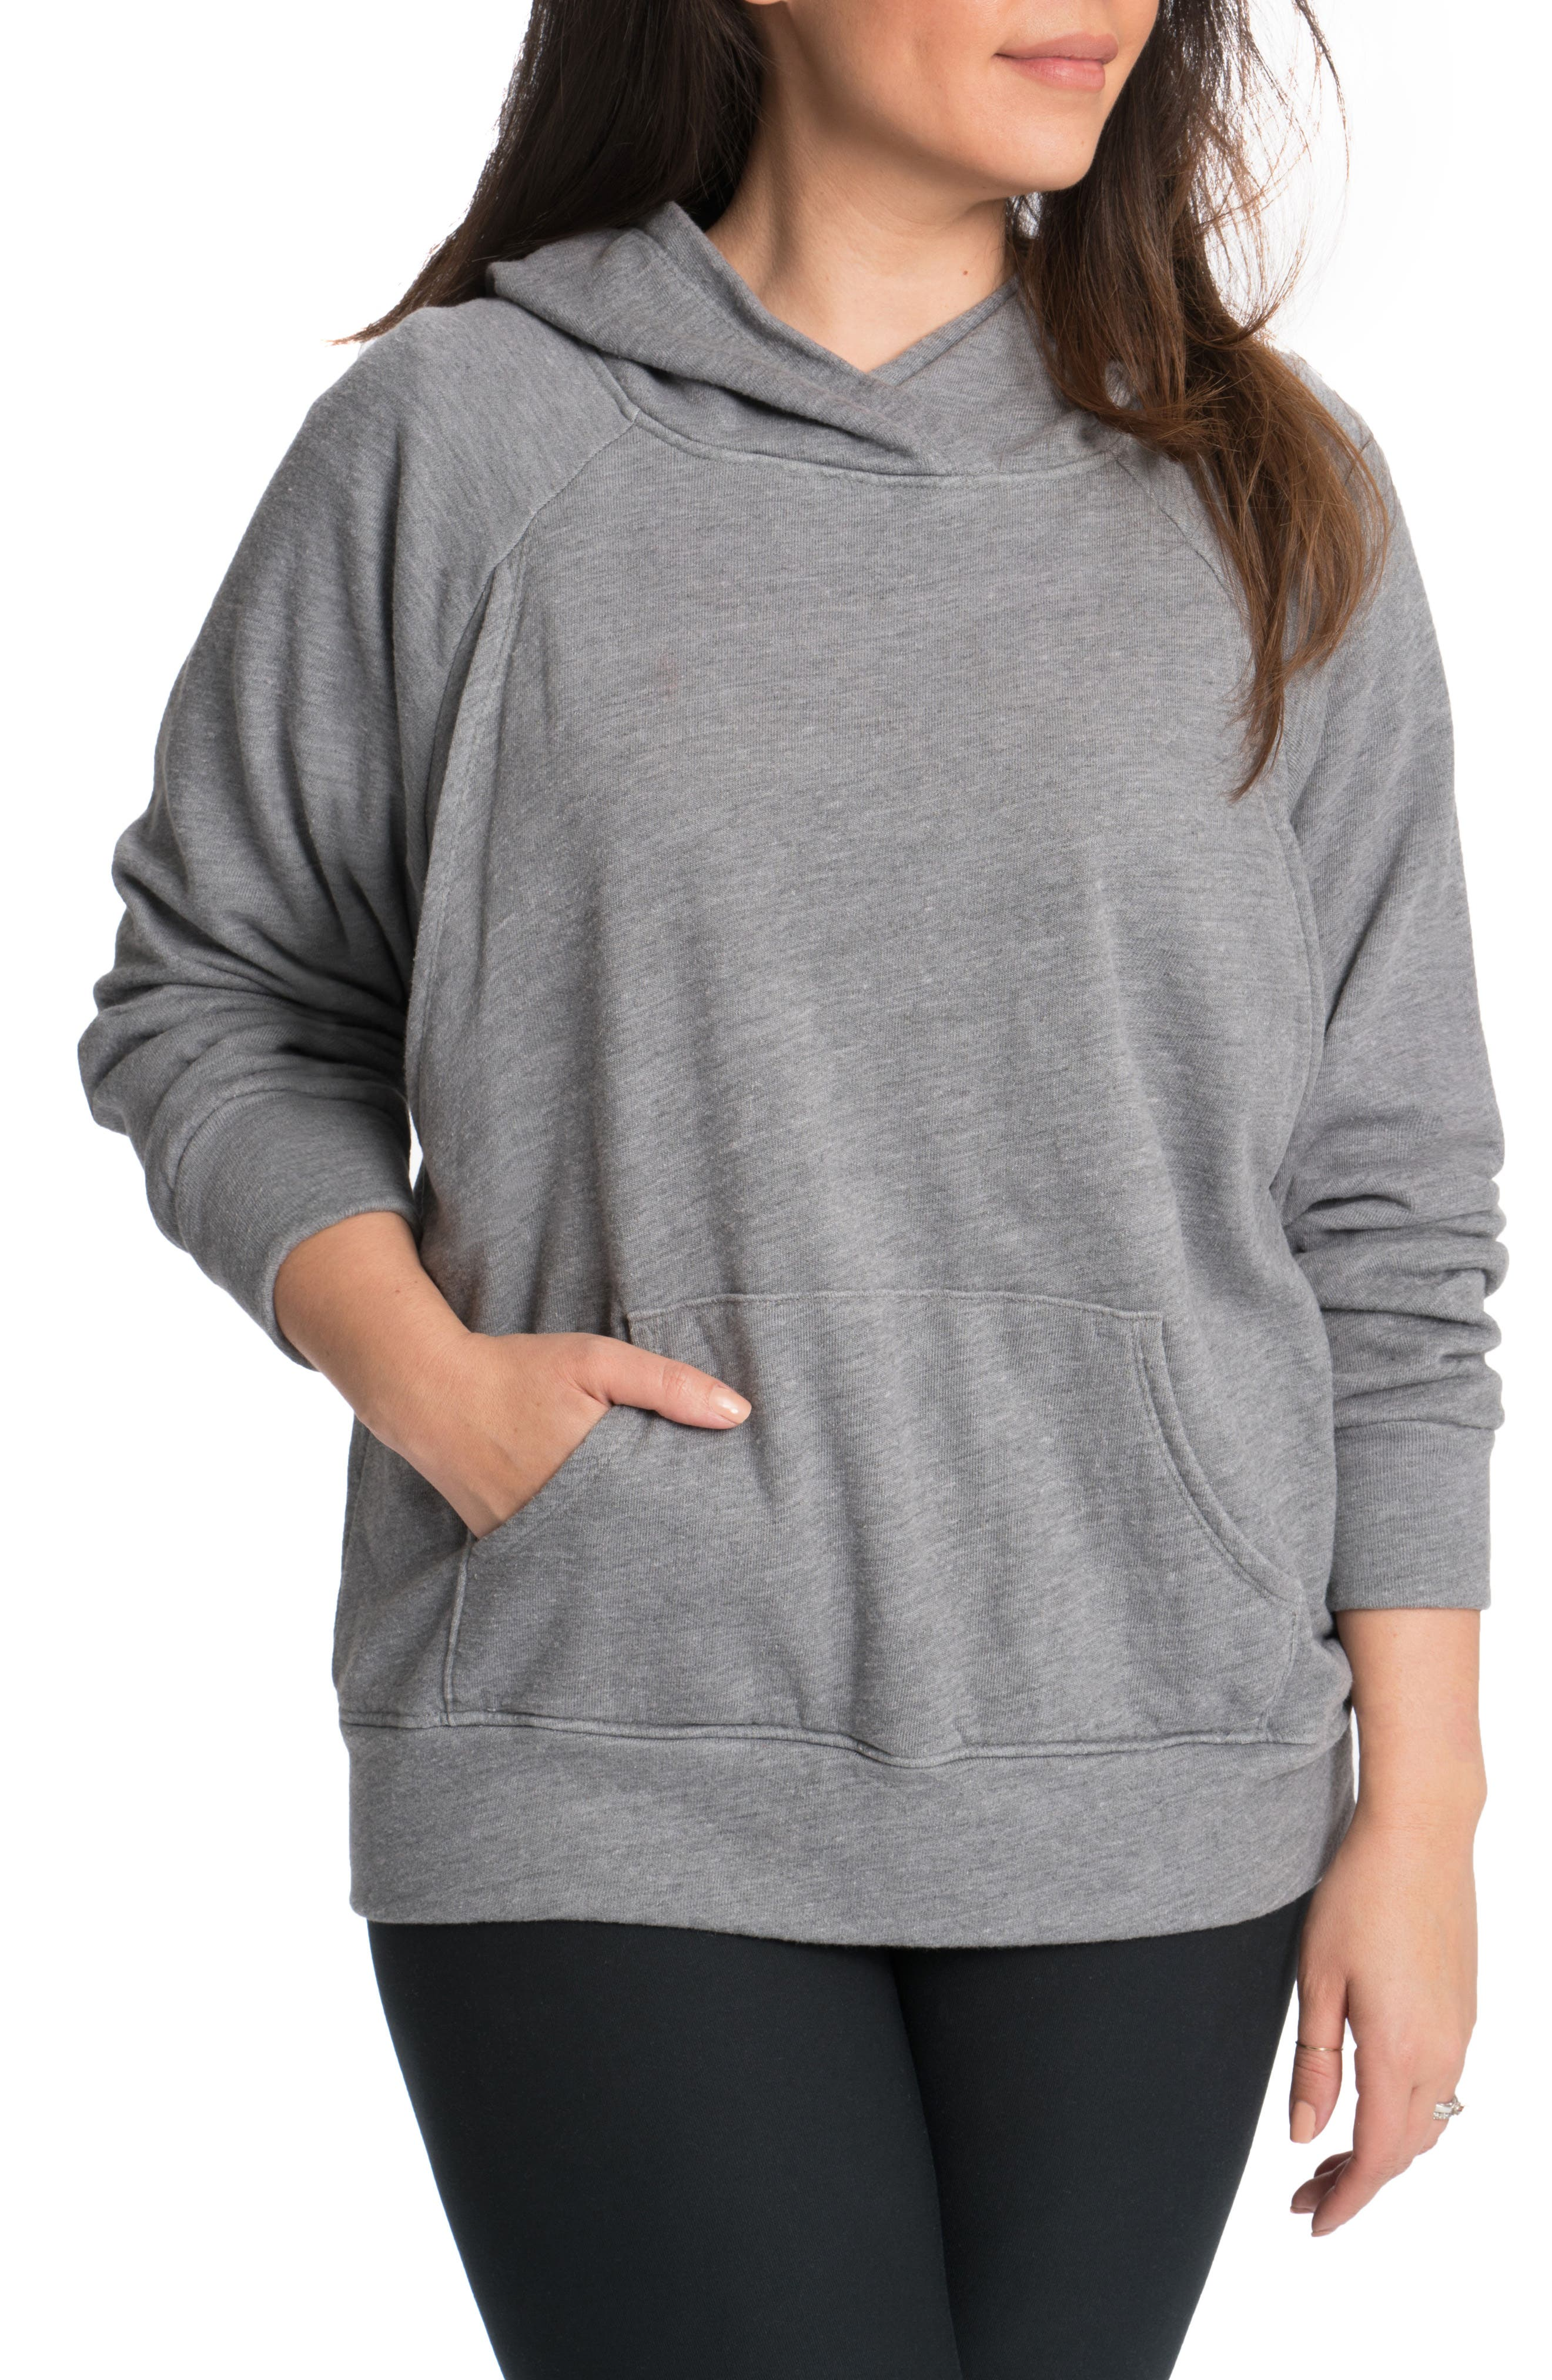 BUN MATERNITY Relaxed Daily Maternity Nursing Hoodie, Main, color, HEATHER GREY